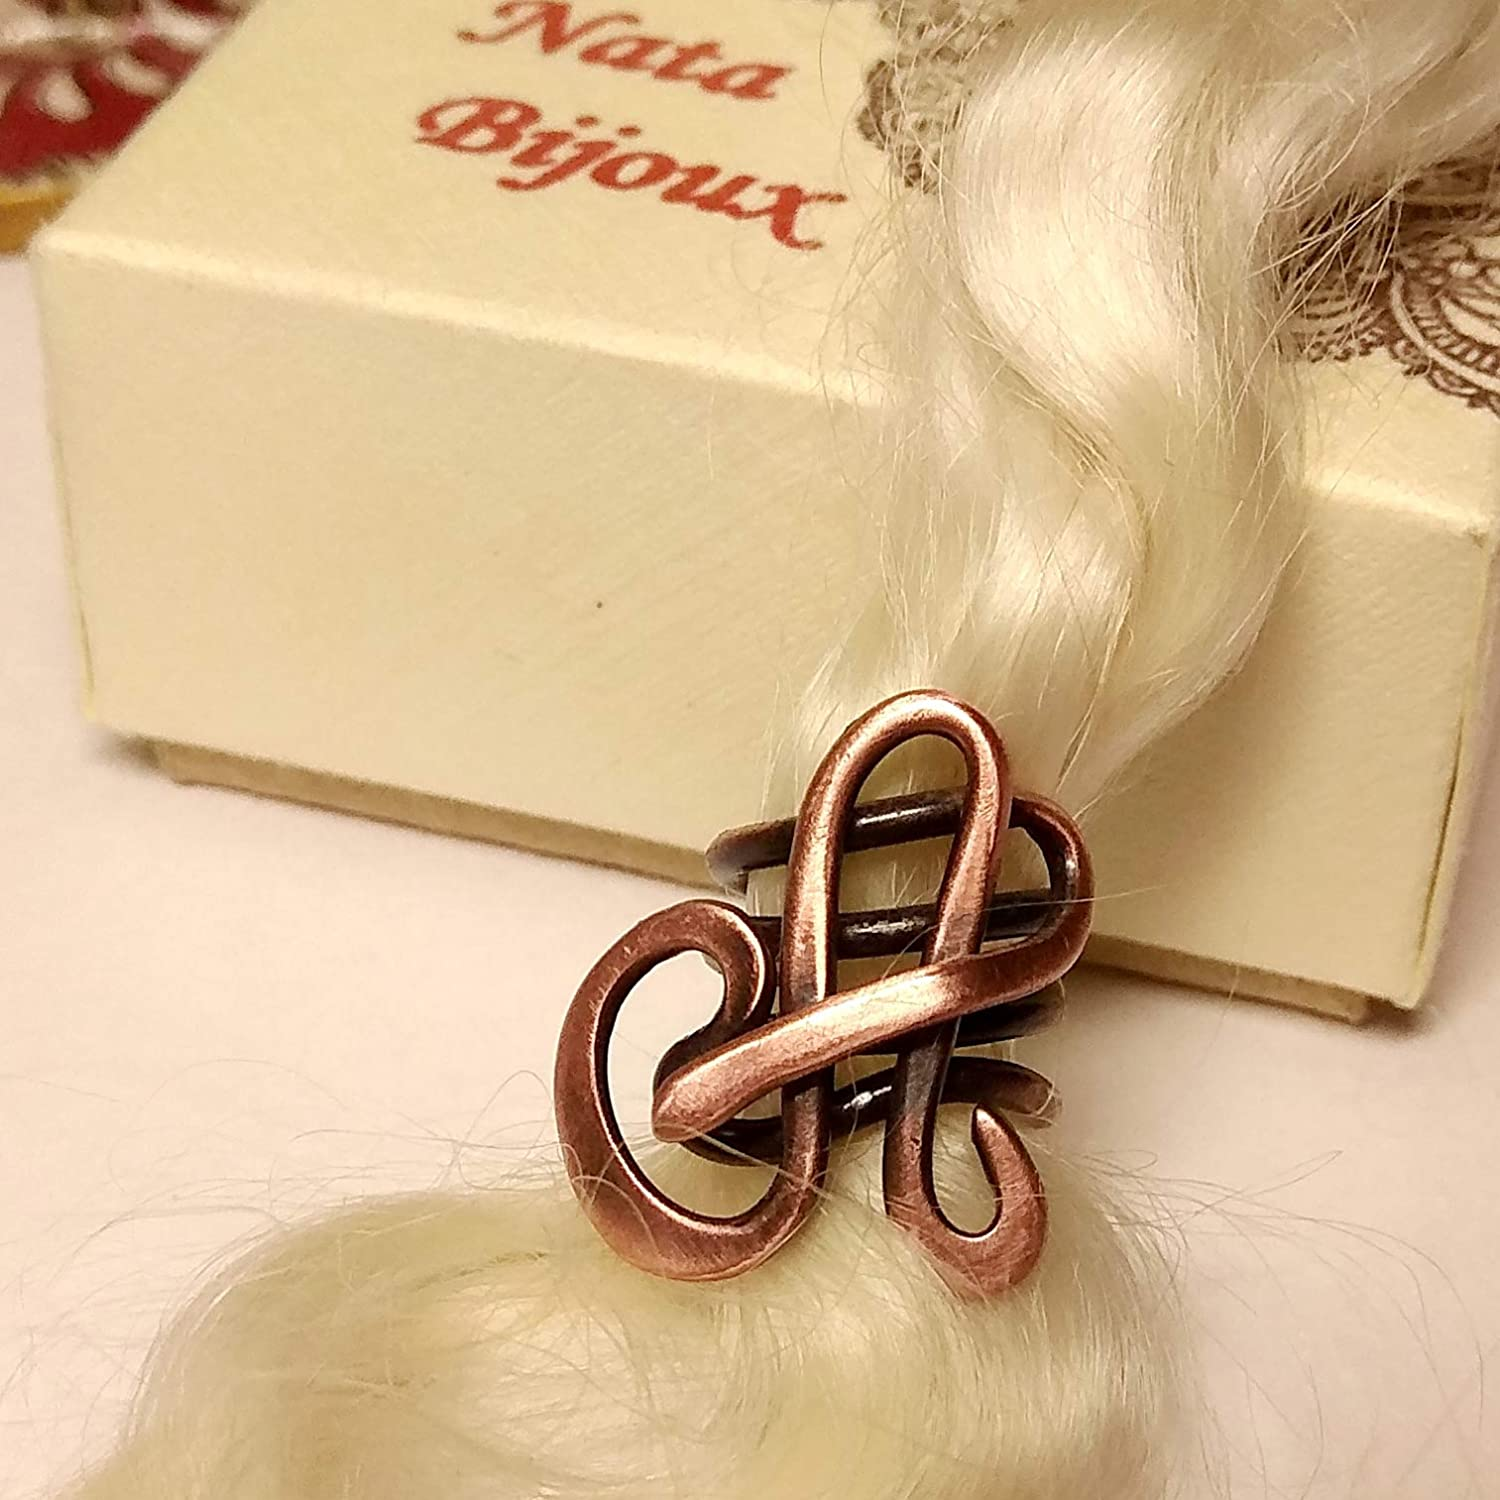 Monogram Dreadlock Accessory Letter Loc Jewelry Initial A Personalized Copper Bead for Dreads or Braids